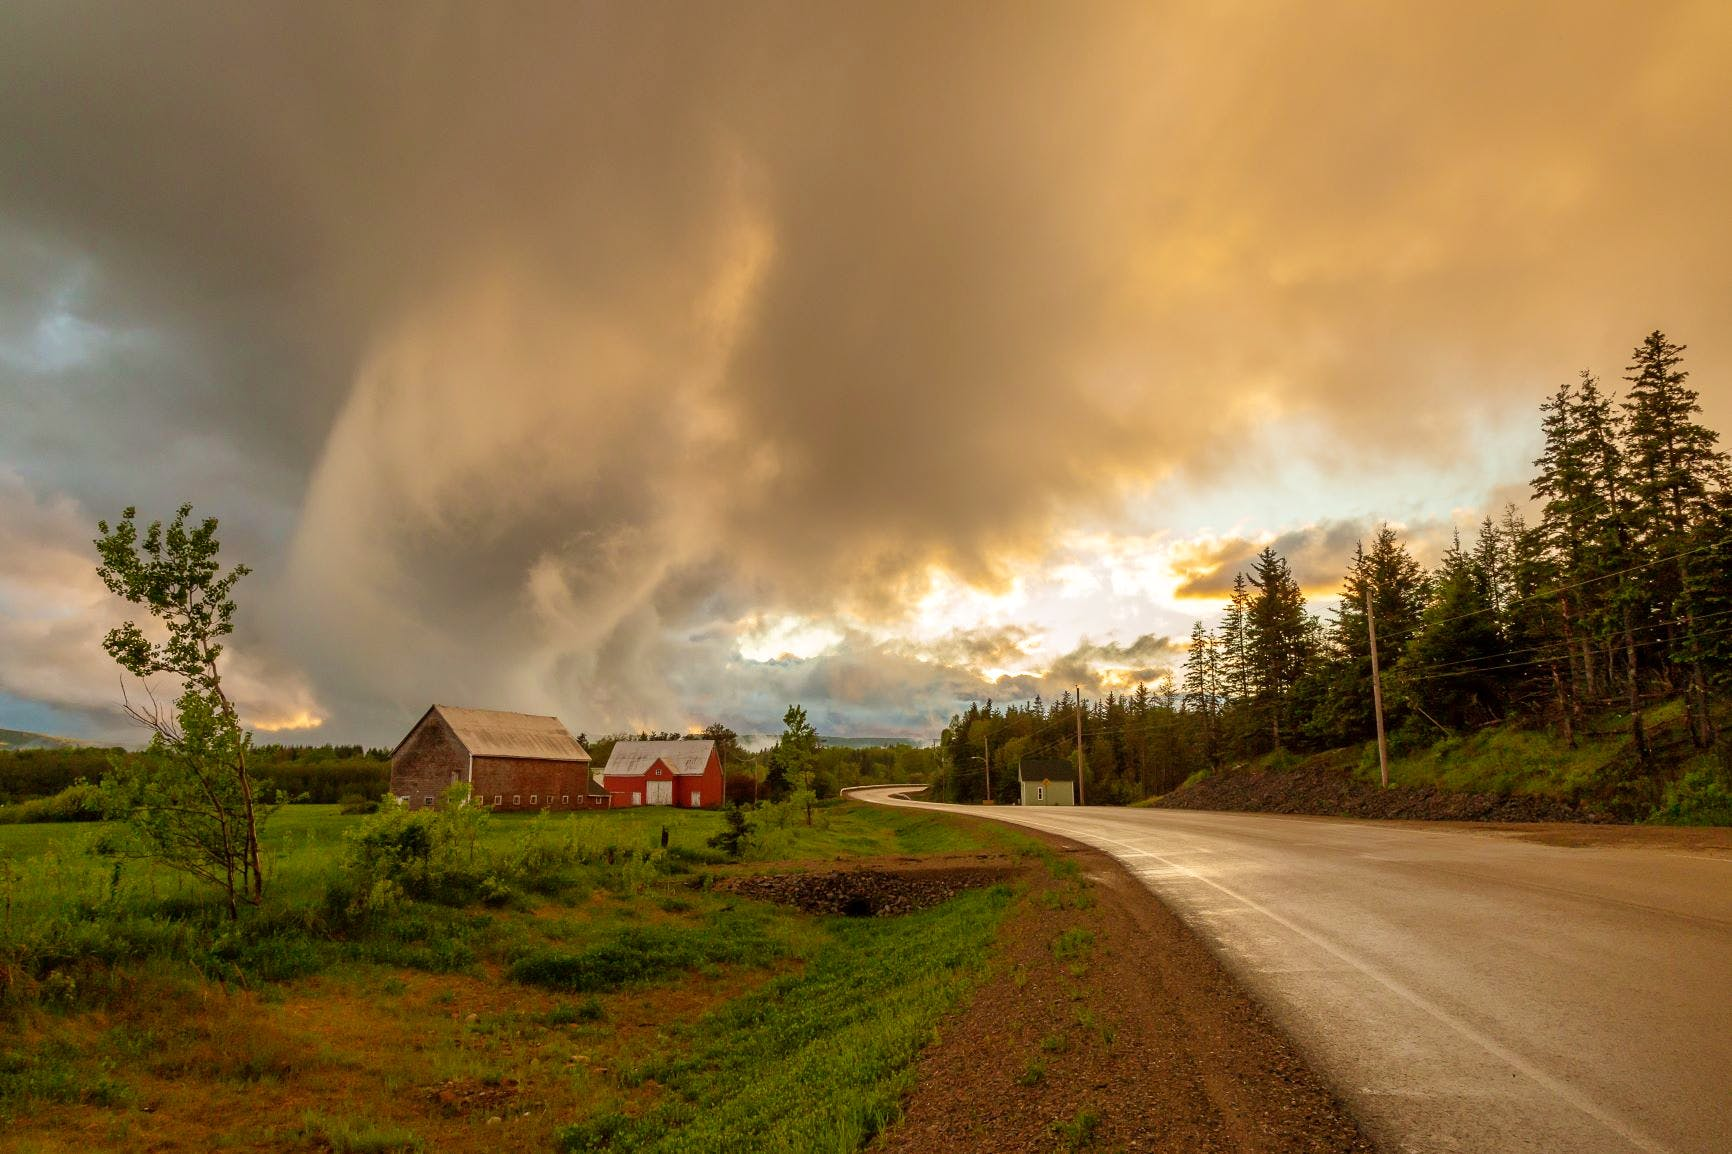 A few of Cyndie's friends advised her to get my take on the ominous-looking cloud in this photo. Cyndie snapped the picture at approximately 8:25 p.m. on June 9, in Middle River, Cape Breton, N.S.